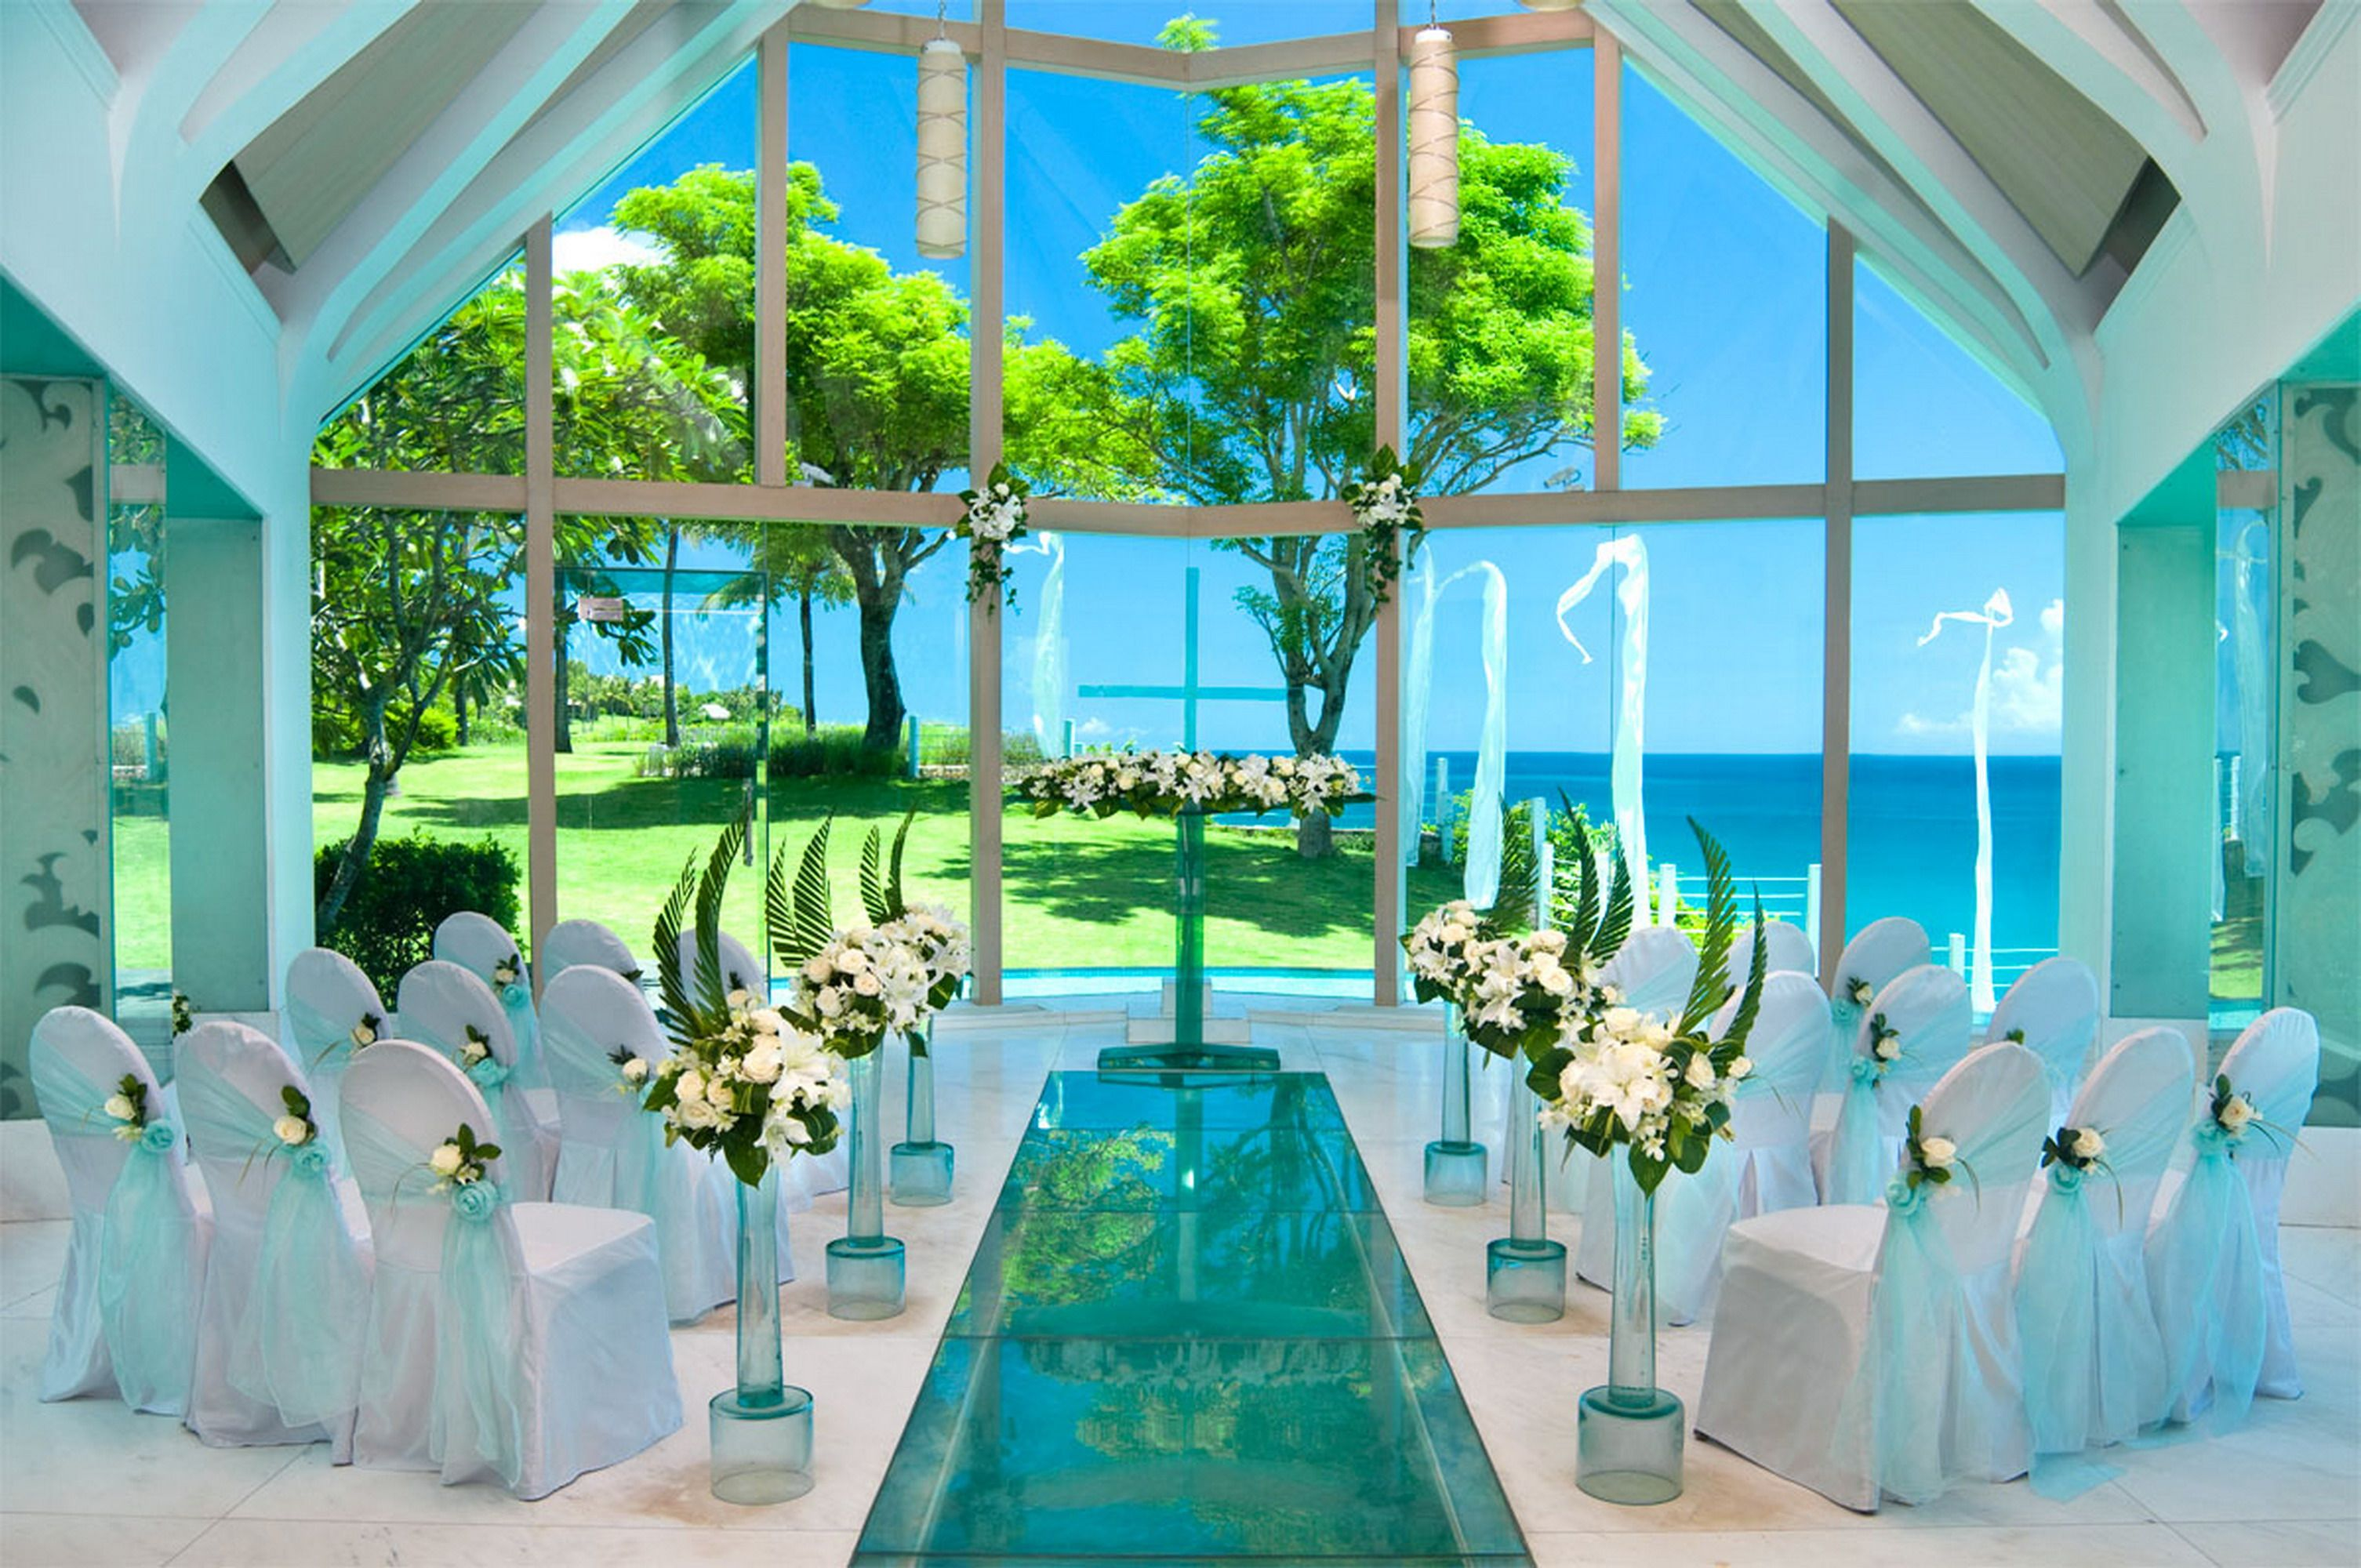 Beautyful Places Destination: Beautiful Wedding Venues In Bali » Ayana Chapel